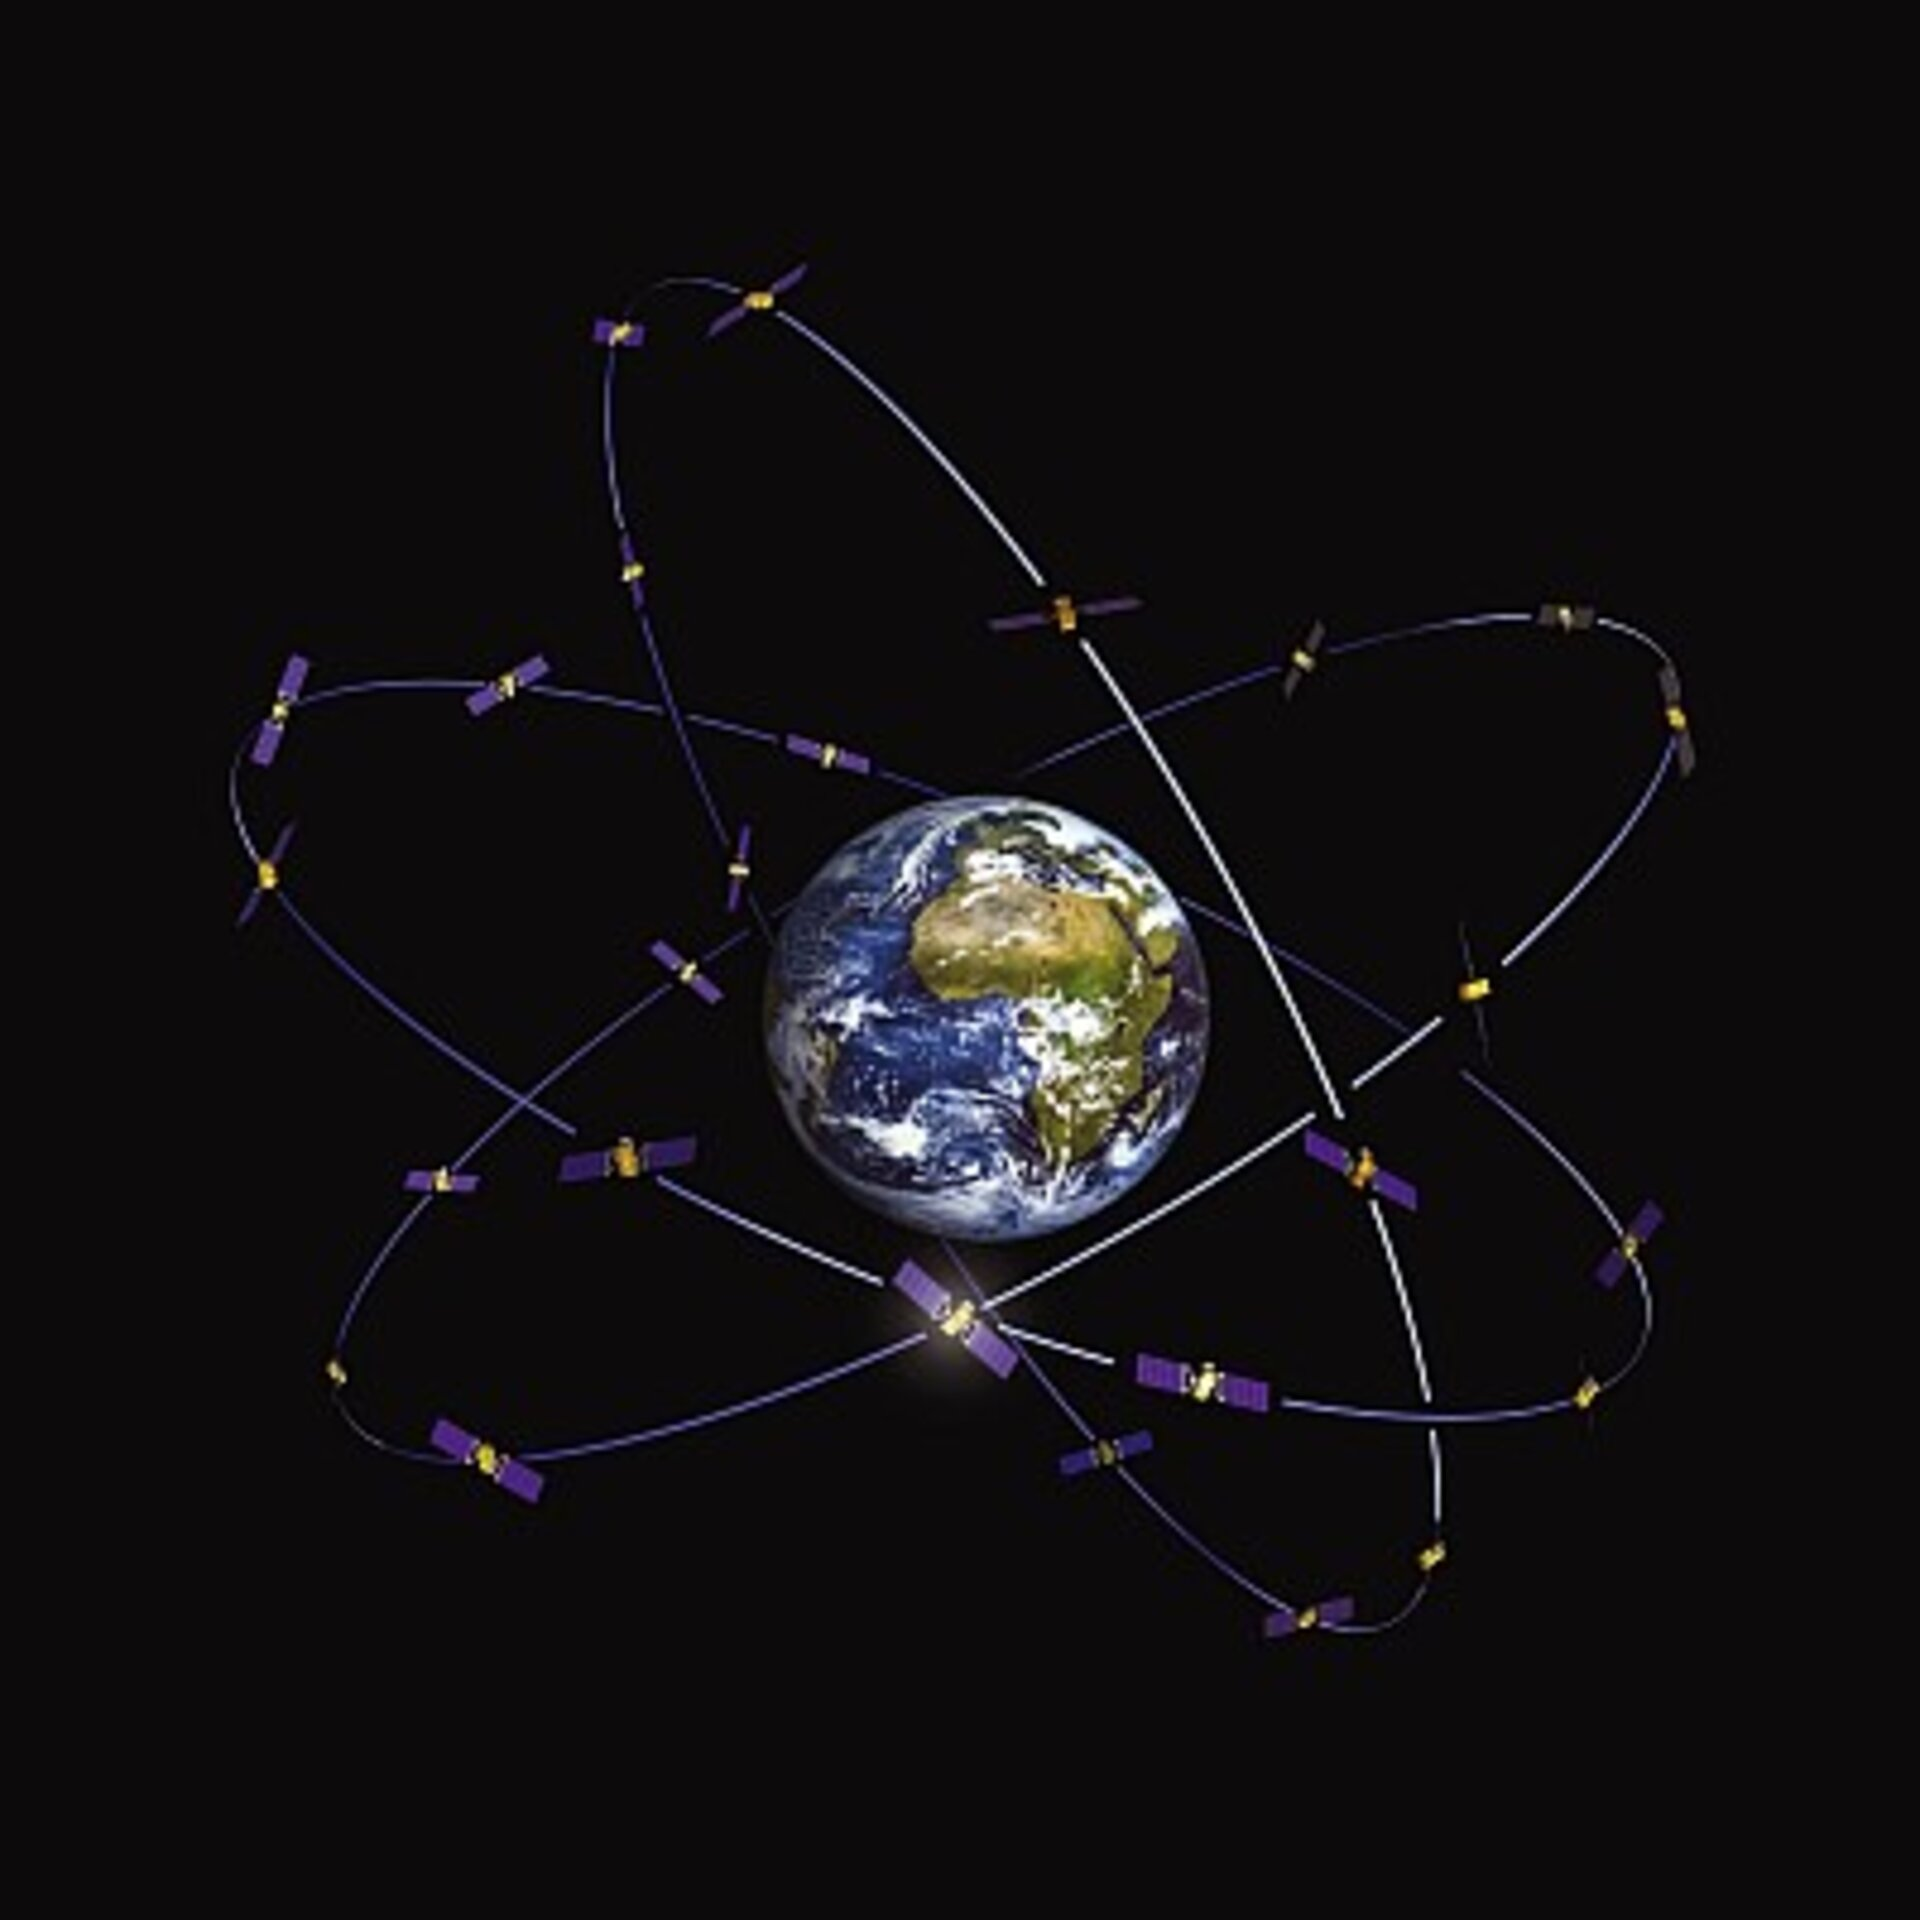 Galileo constellation of 30 satellites